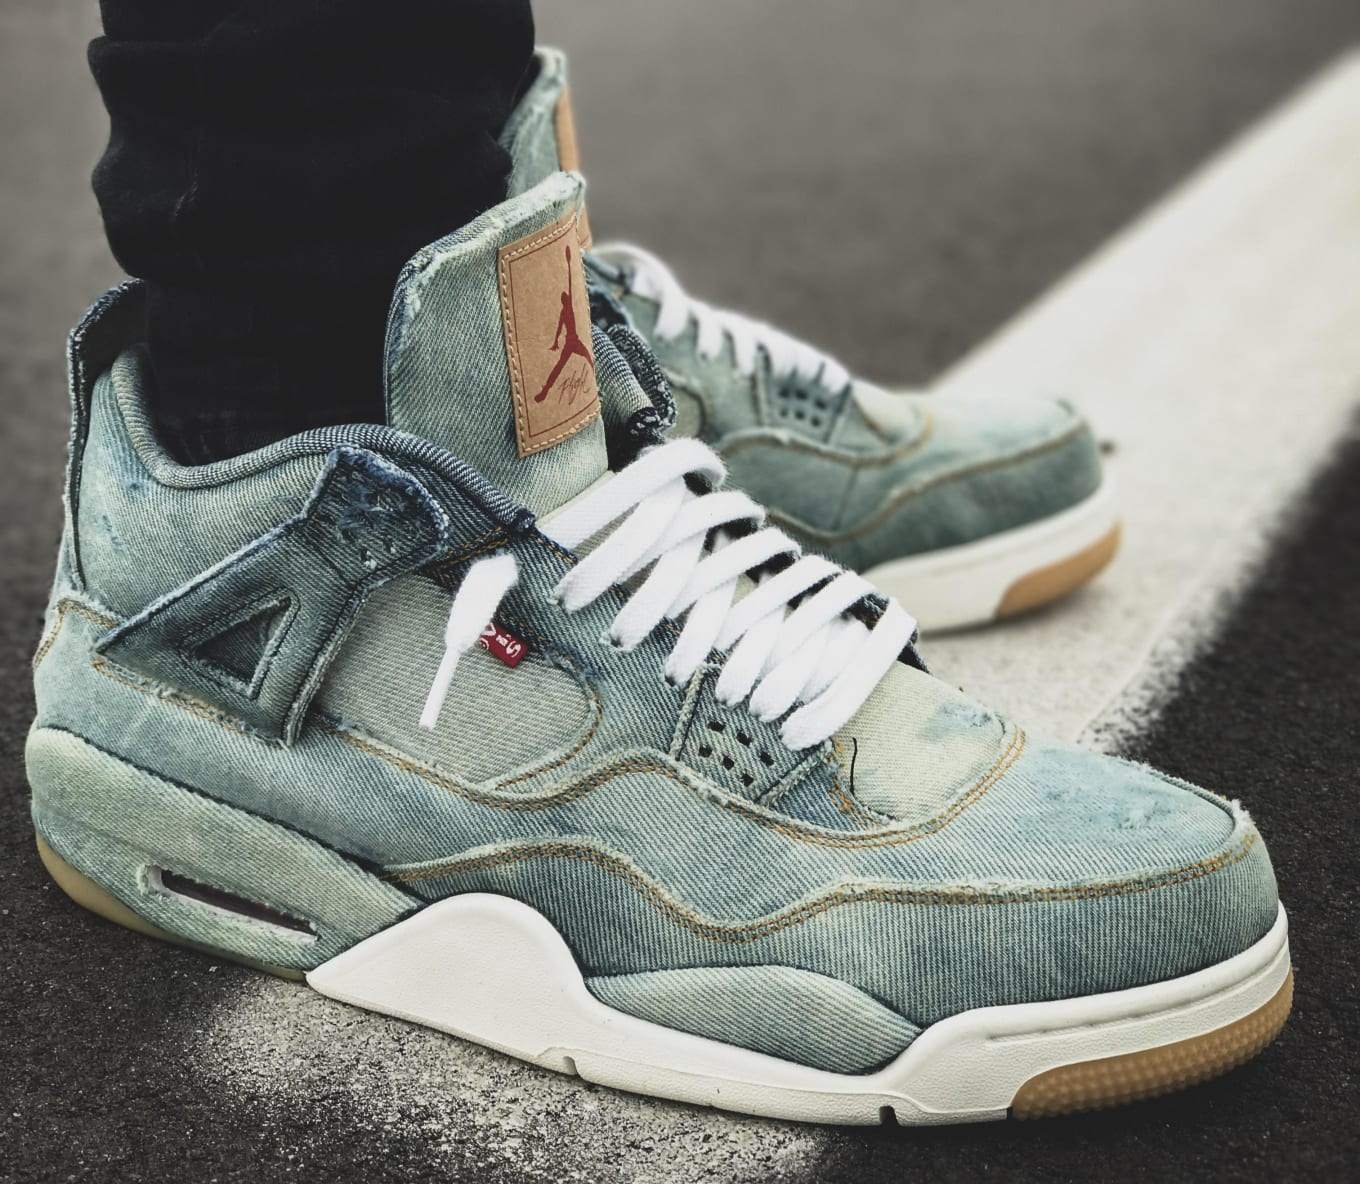 meet ab58a 755b2 Custom Levi's x Air Jordan 4 | Sole Collector